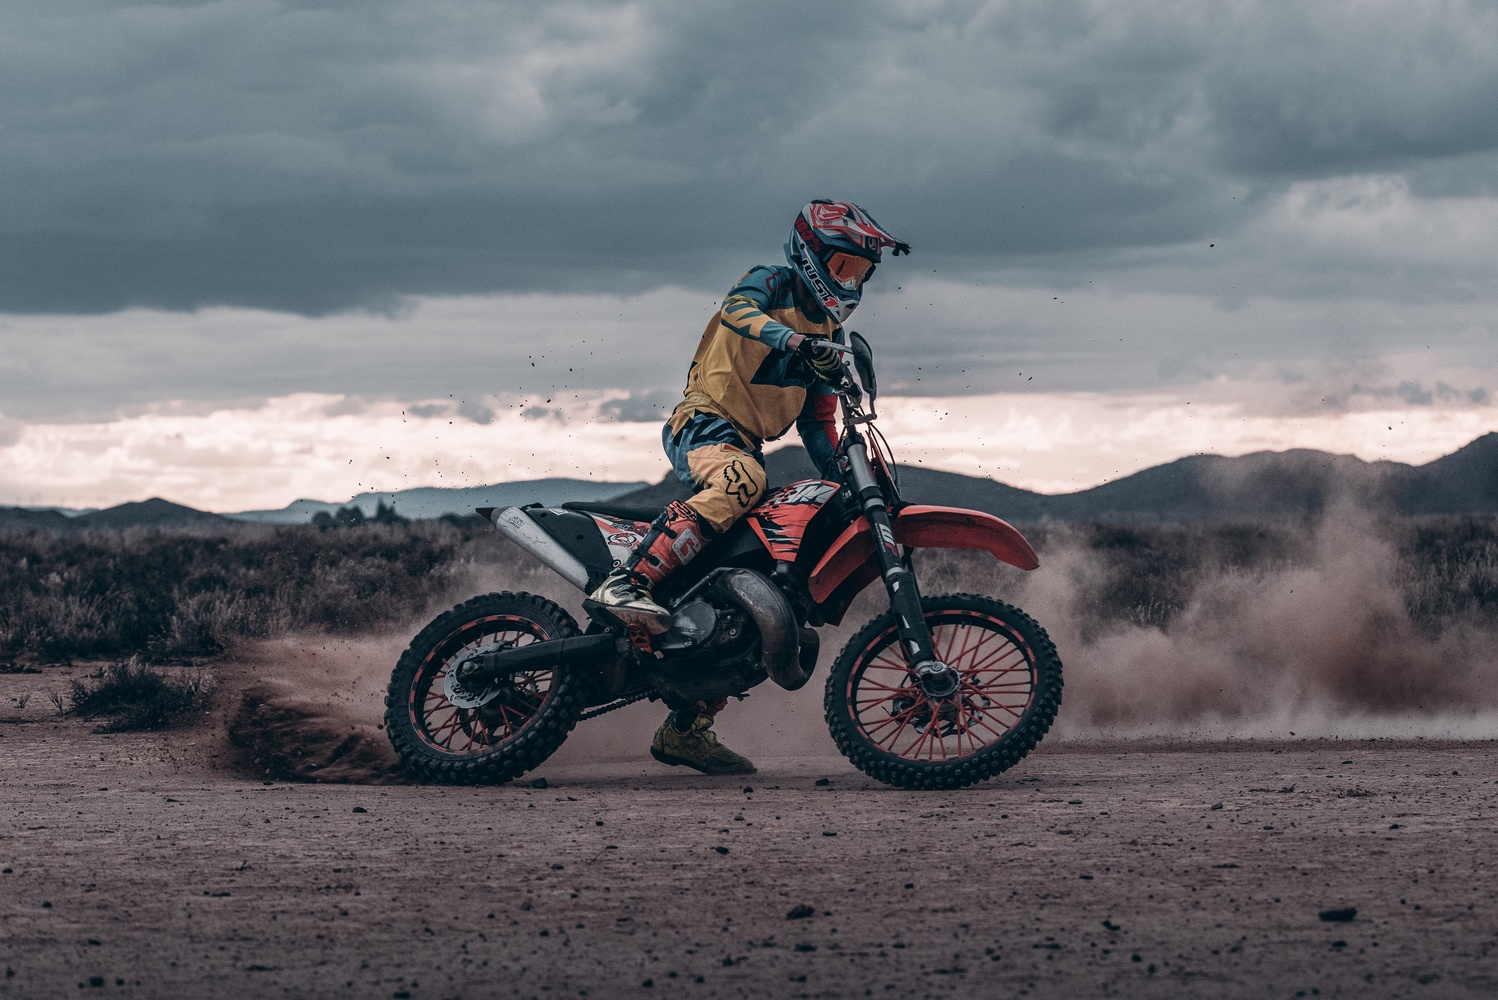 Picking up dirt in the Karoo by Ryan Hill